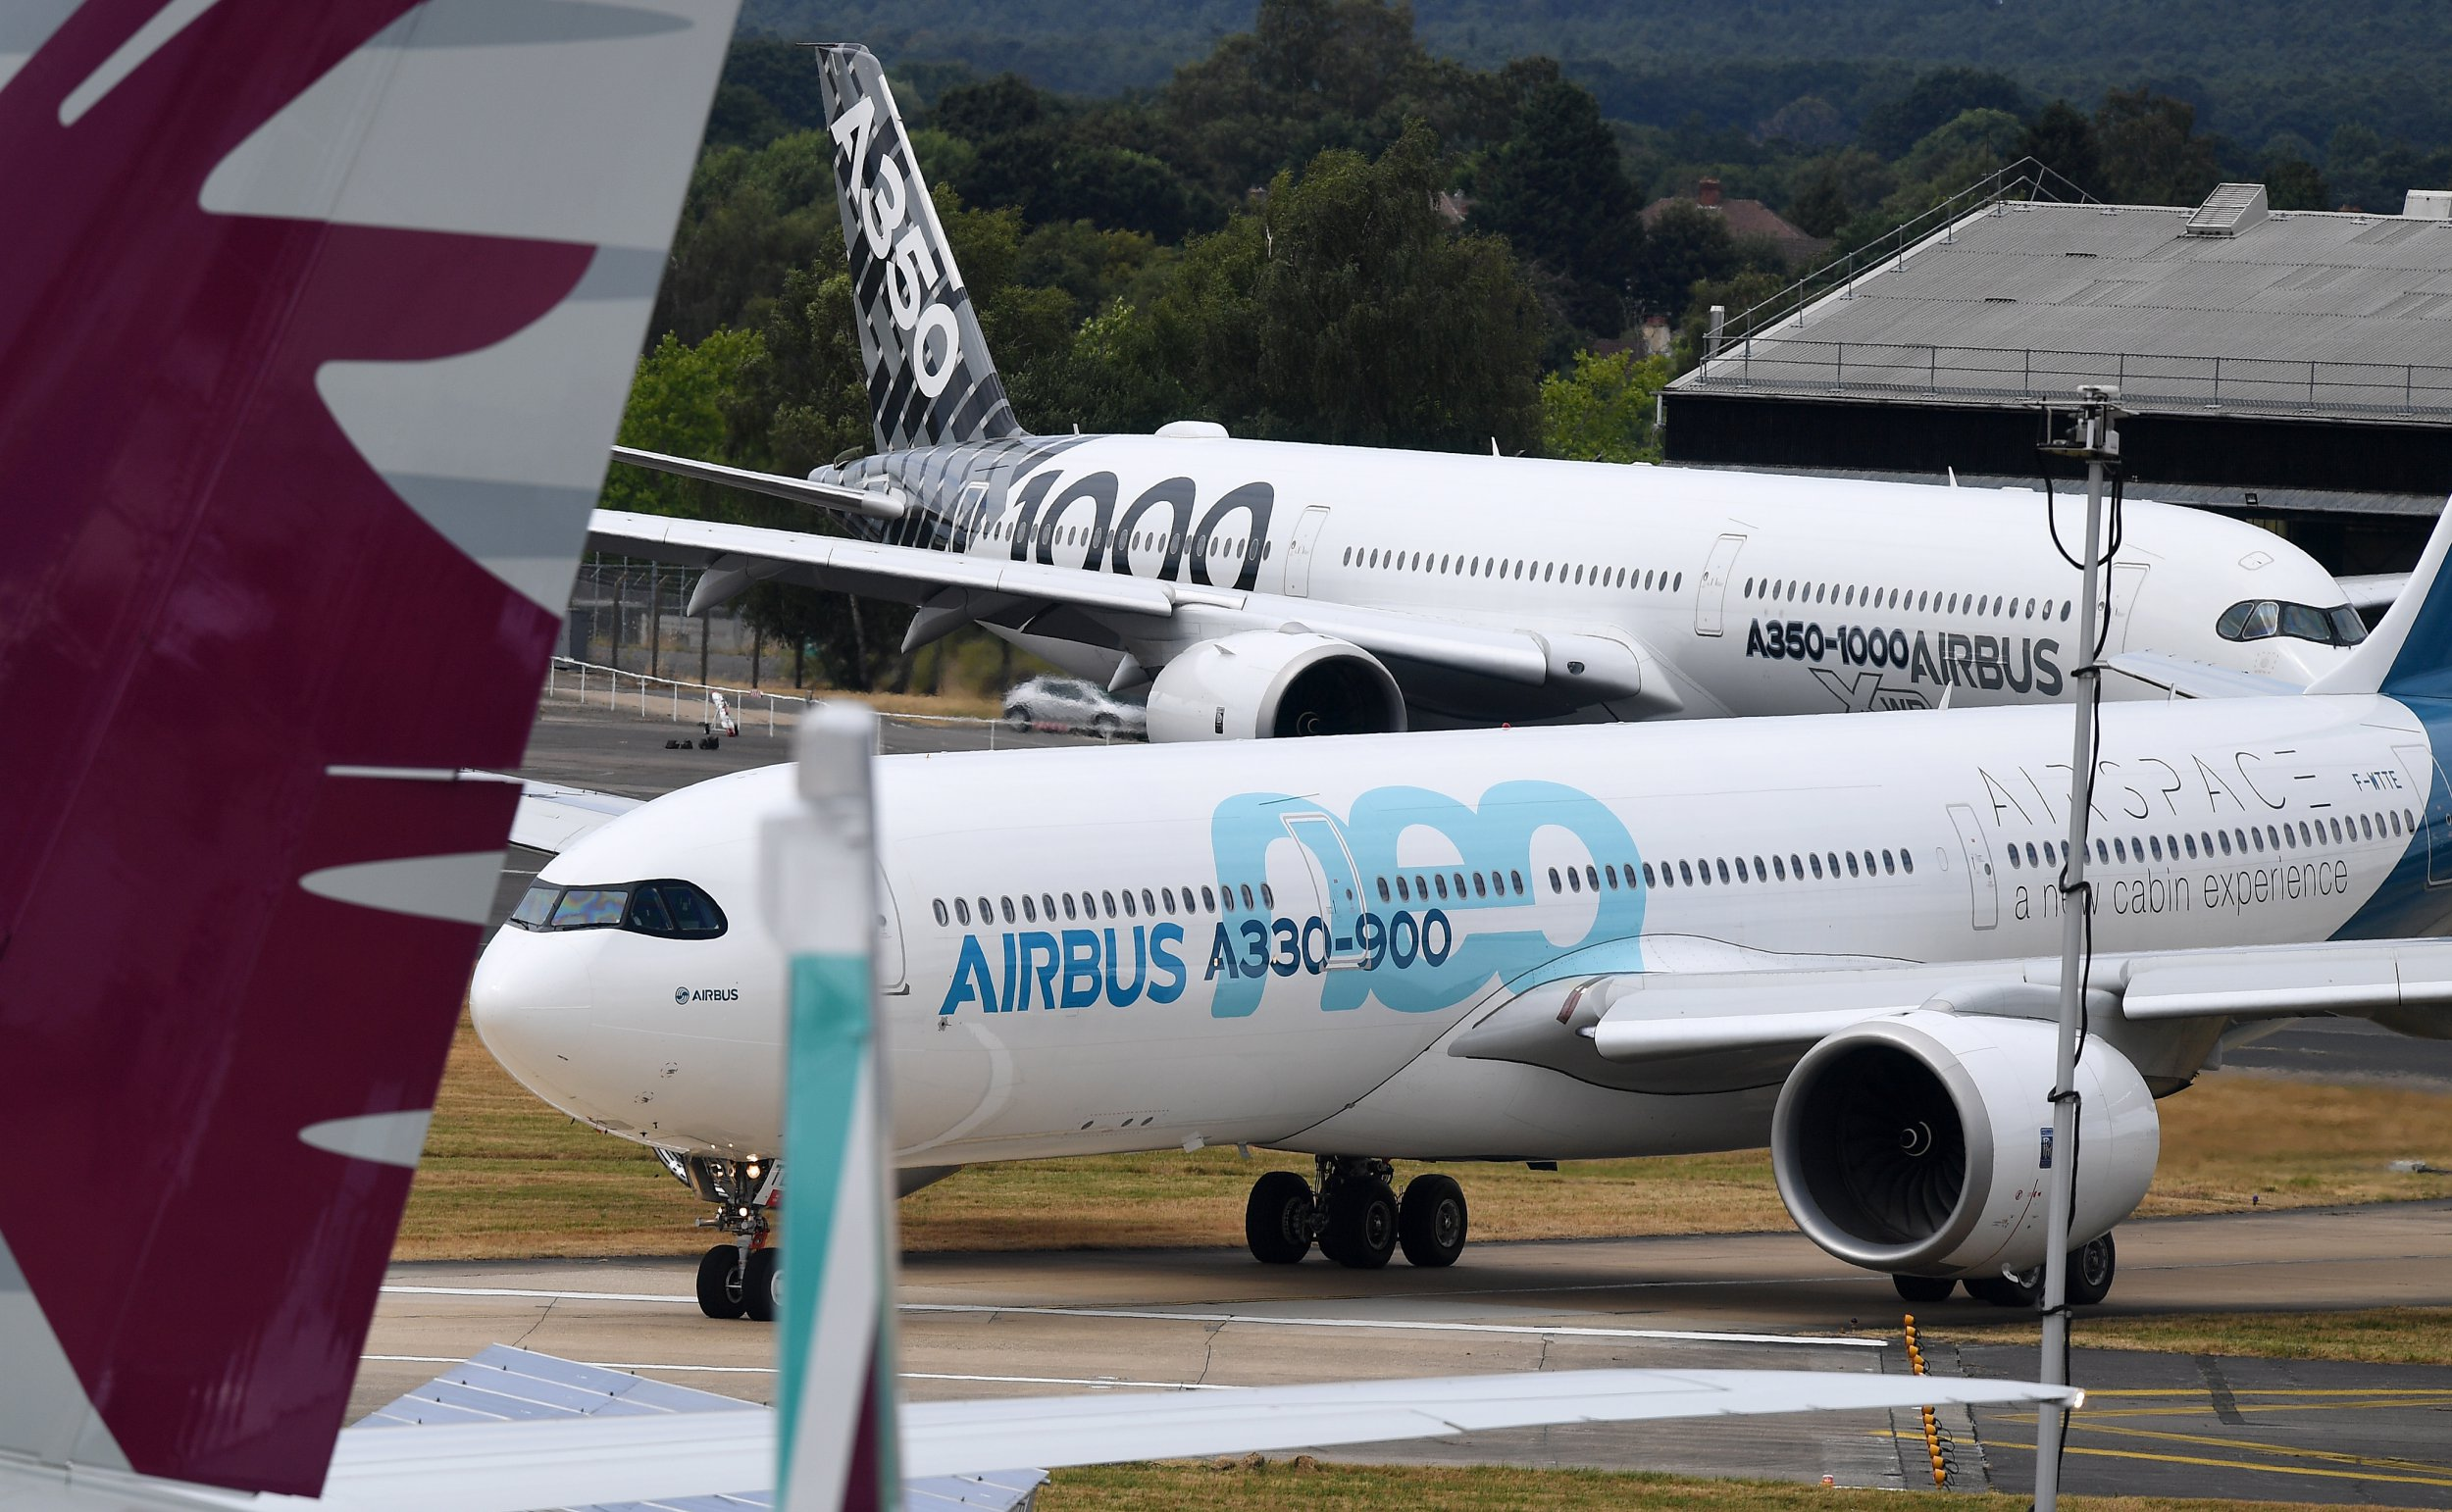 epa07314835 (FILE) - An Airbus A330-900 neo (front) and an A350-1000 XWB (behind) taxi to the runway at the Farnborough International Airshow (FIA2018), in Farnborough, Britain, 17 July 2018 (reissued 24 January 2019). Reports on 24 January 2019 state Airbus' chief executive Tom Enders has said Airbus, that employs 14,000 staff in UK, 'will have to make potentially very harmful decisions for the UK' in case of a no-deal Brexit. The company said it could move the wing-construction out from UK if no deal on Brexit will be reached. EPA/ANDY RAIN